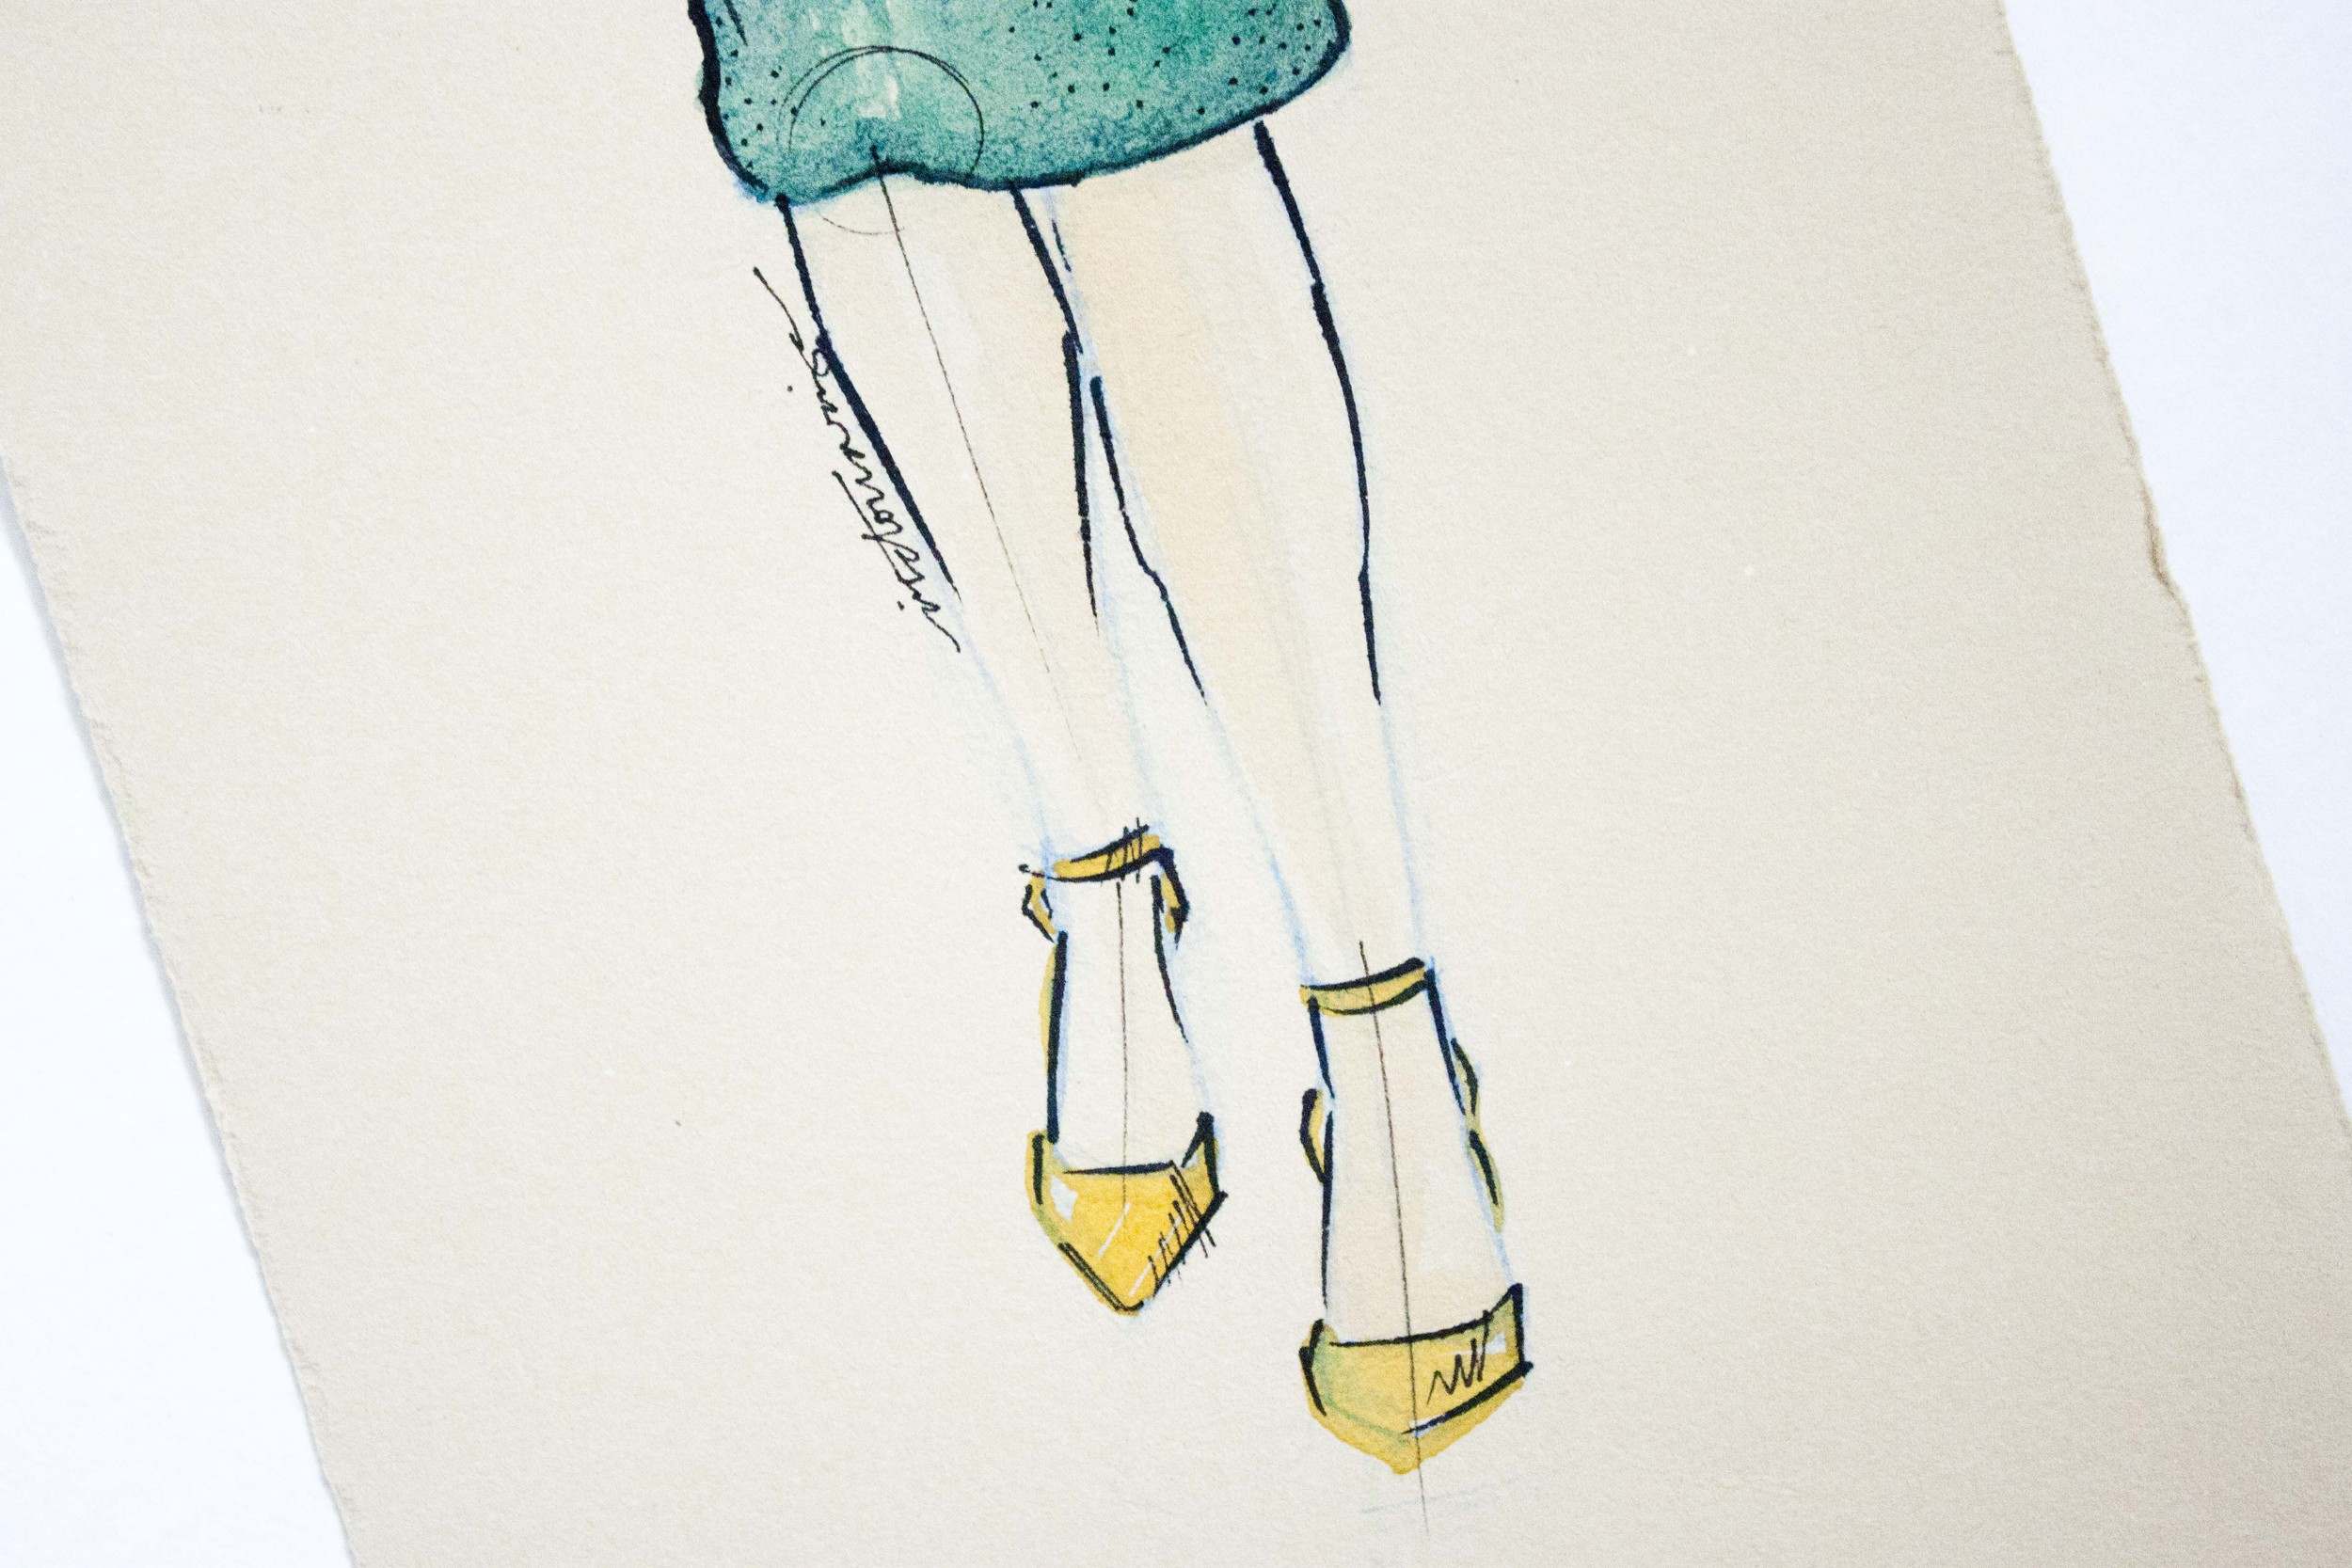 Burberry Spring 2012 illustrated by Victoria-Riza